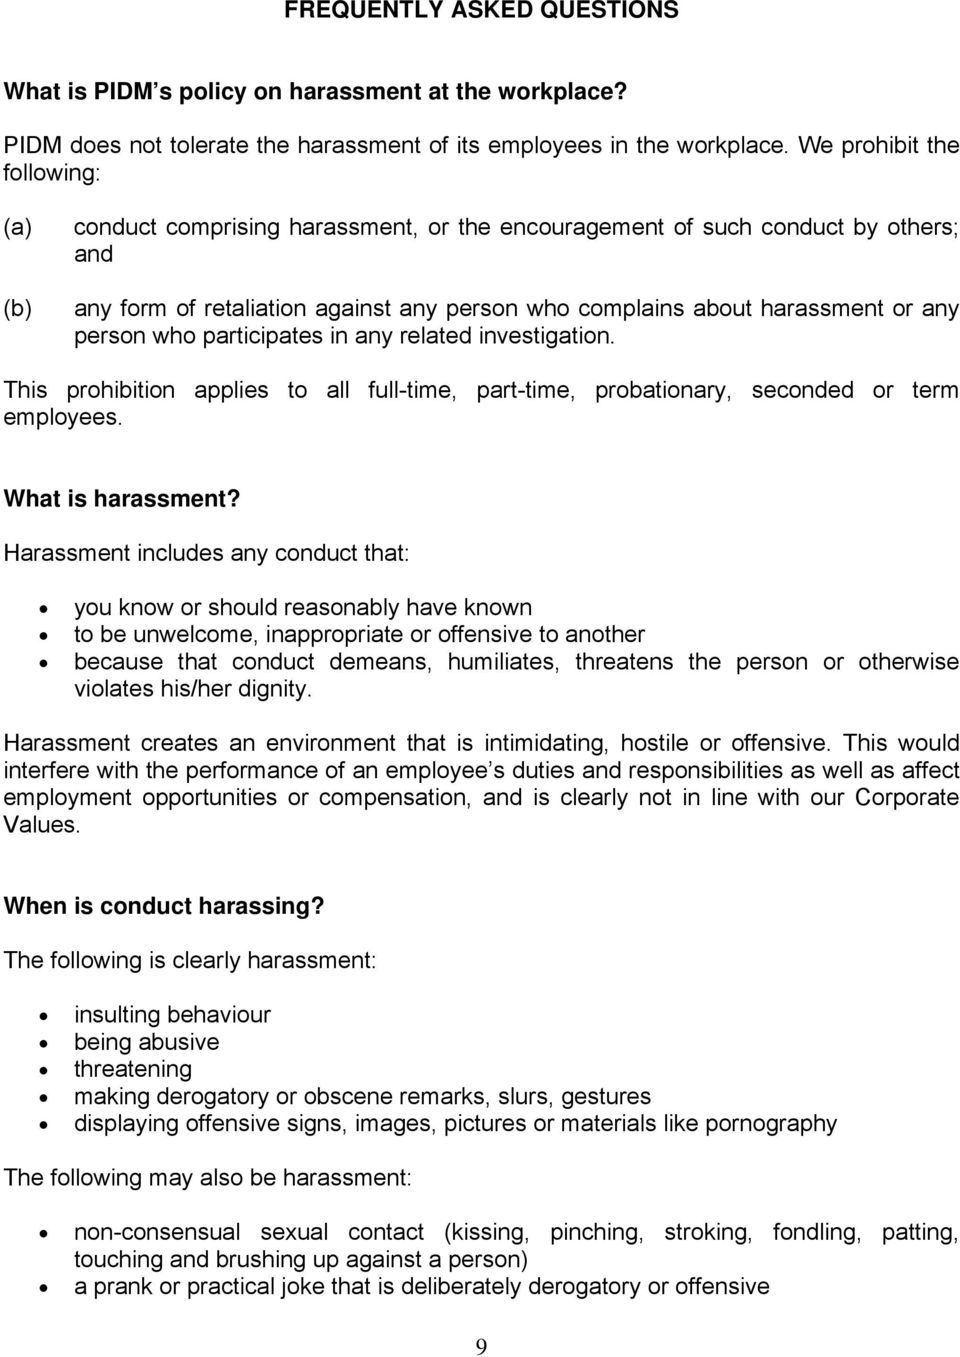 who participates in any related investigation. This prohibition applies to all full-time, part-time, probationary, seconded or term employees. What is harassment?